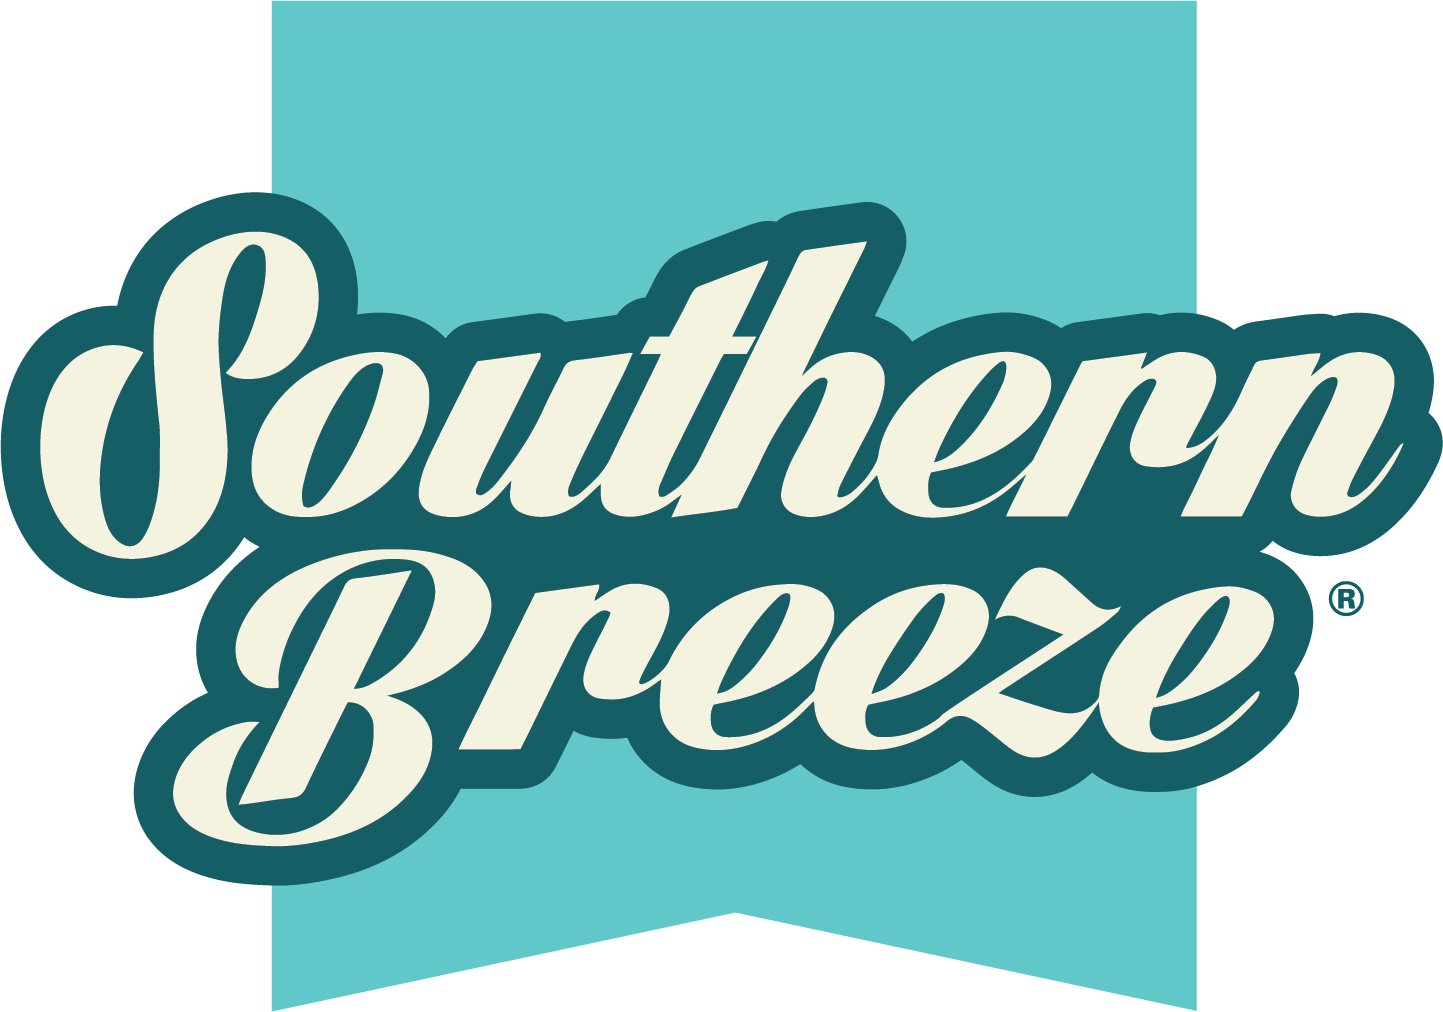 Southern Breeze logo